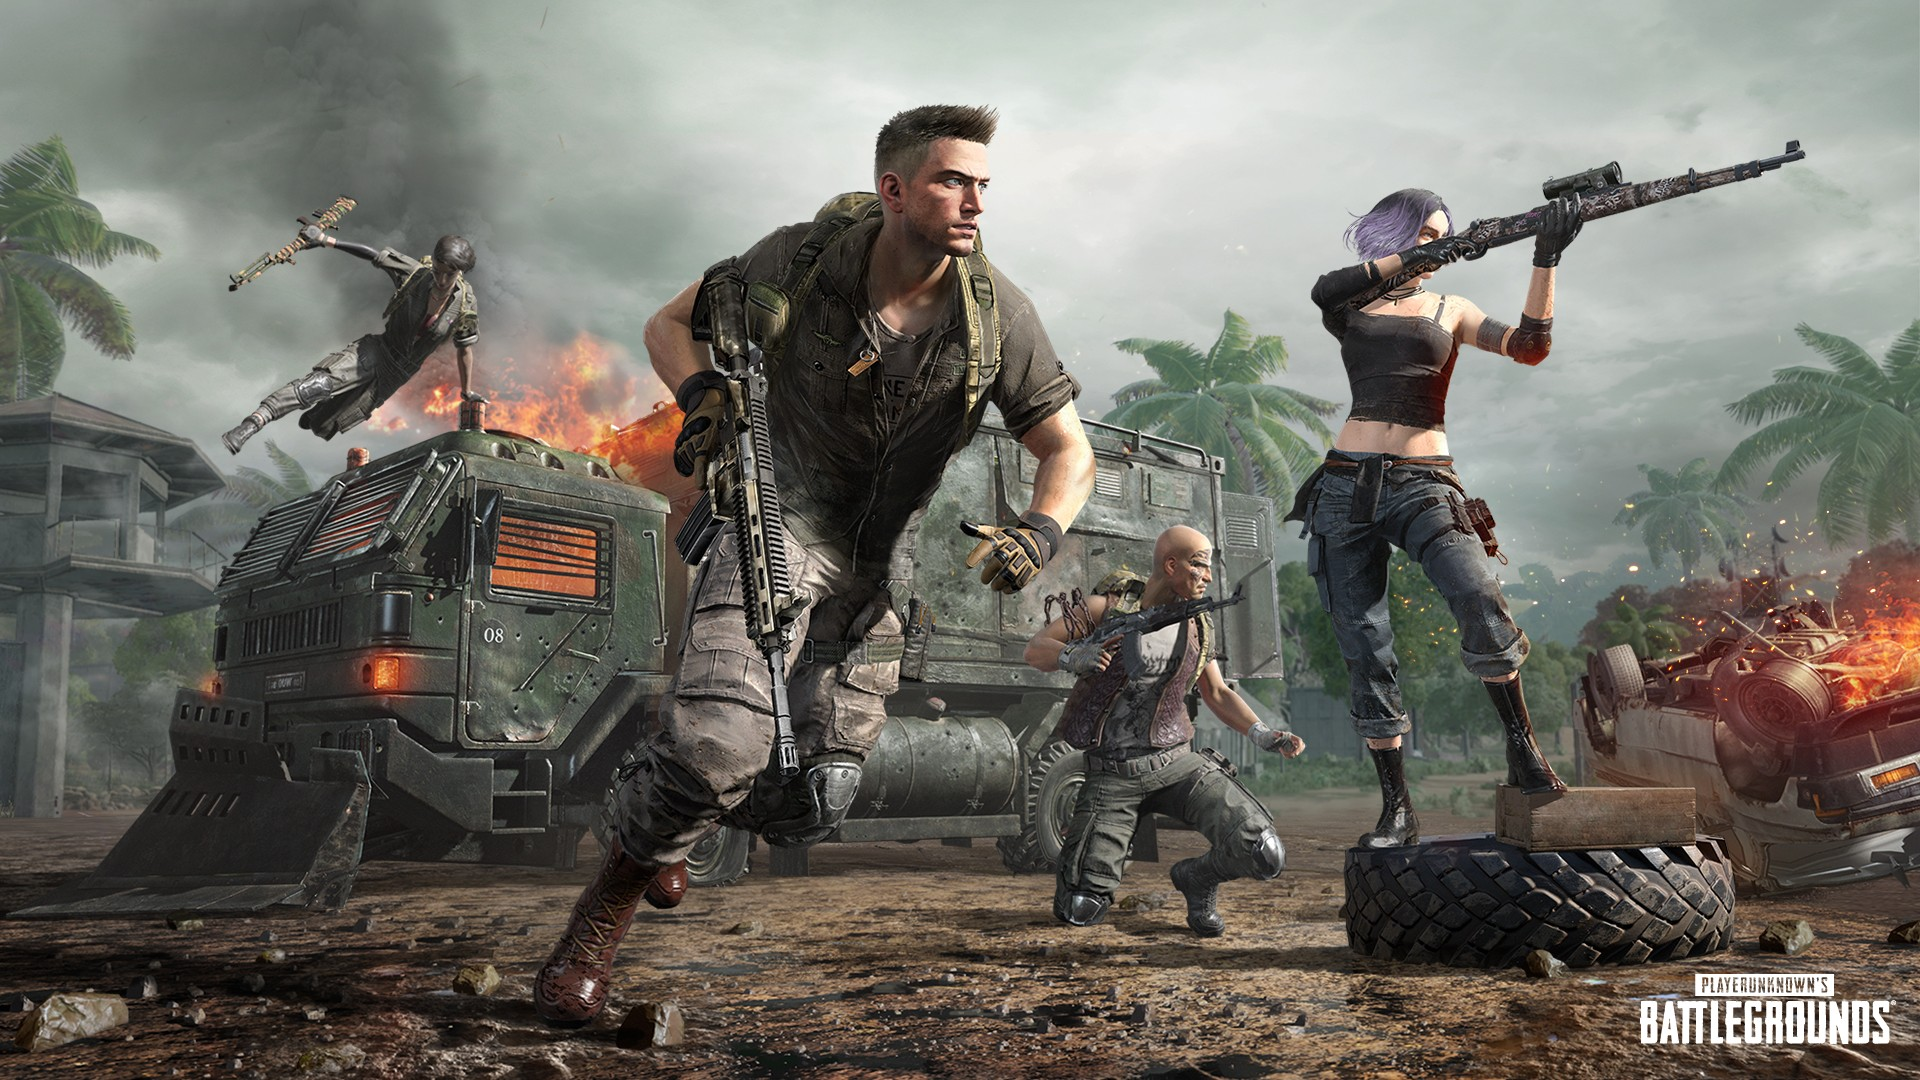 Video For Drop into PUBG Season 8 and Experience the Remastered Sanhok, Loot Truck, and Survivor Pass